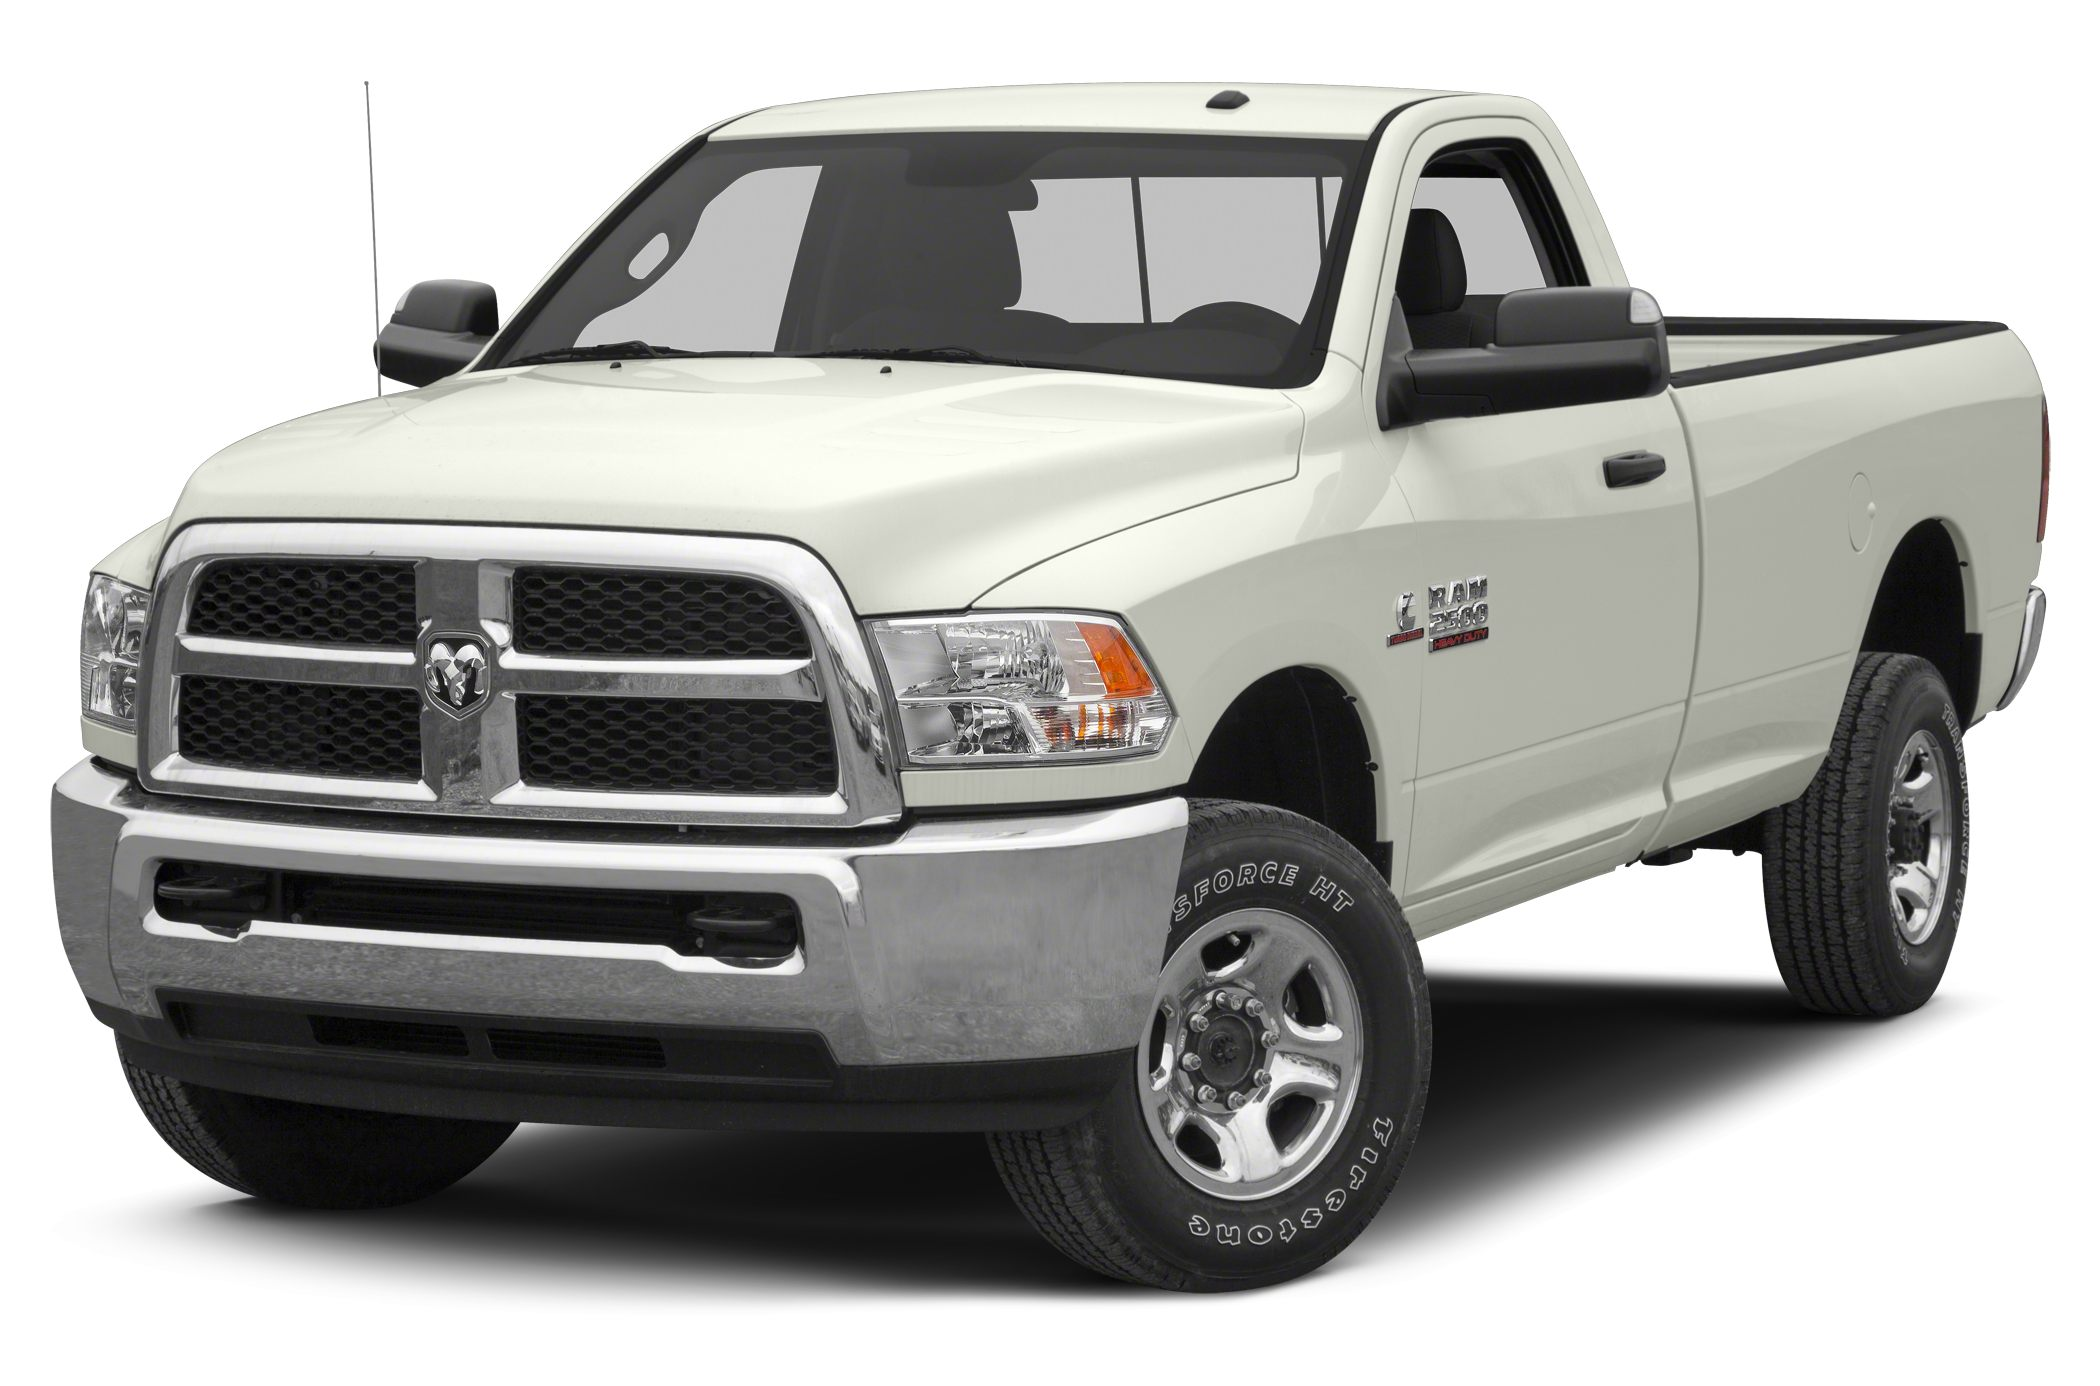 2013 RAM 2500 Tradesman Great condition low mileage 4x4 HD truck thats ready to work We have inve